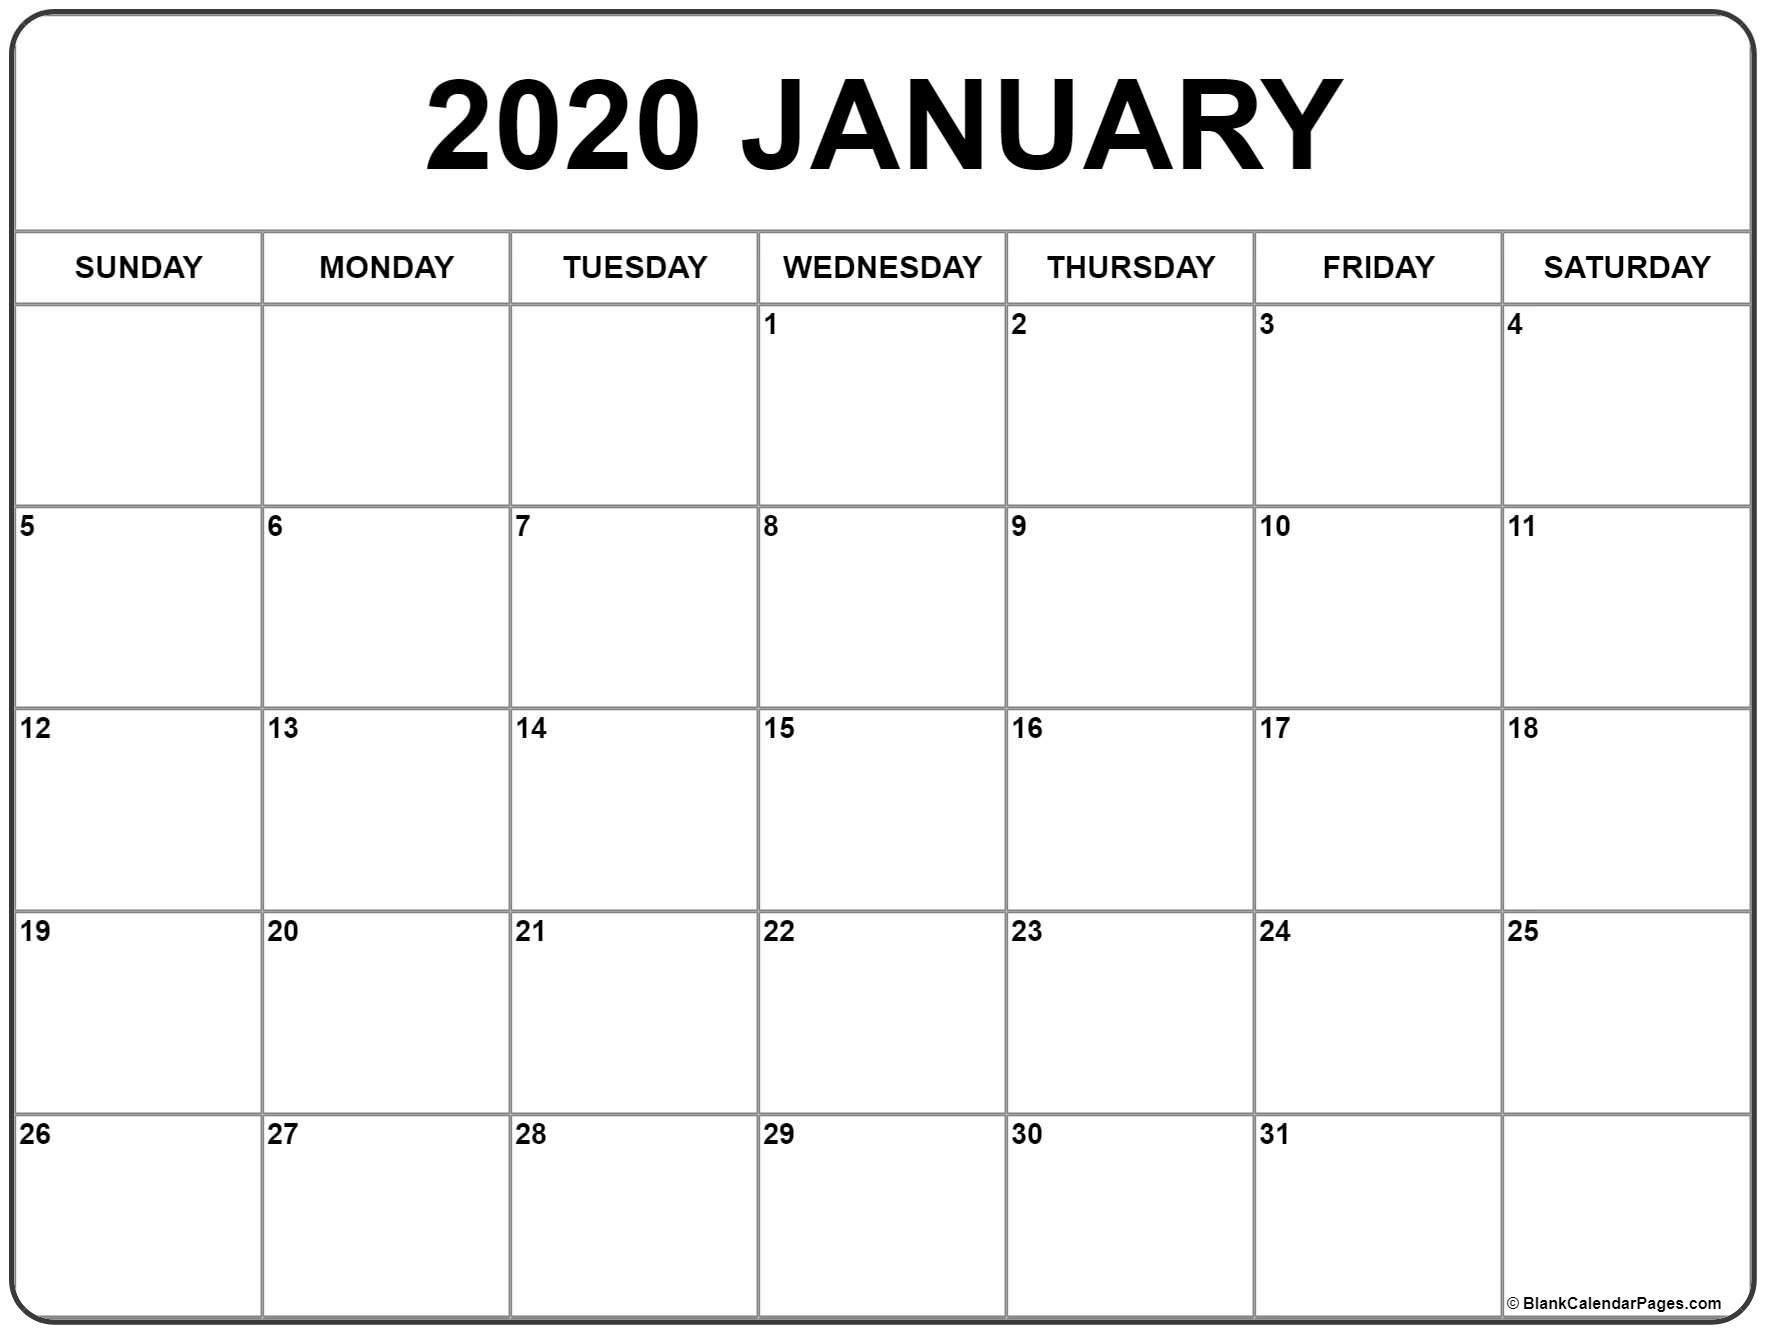 January 2020 Calendar | Free Printable Monthly Calendars  Free Printable Editable Calendars 2020